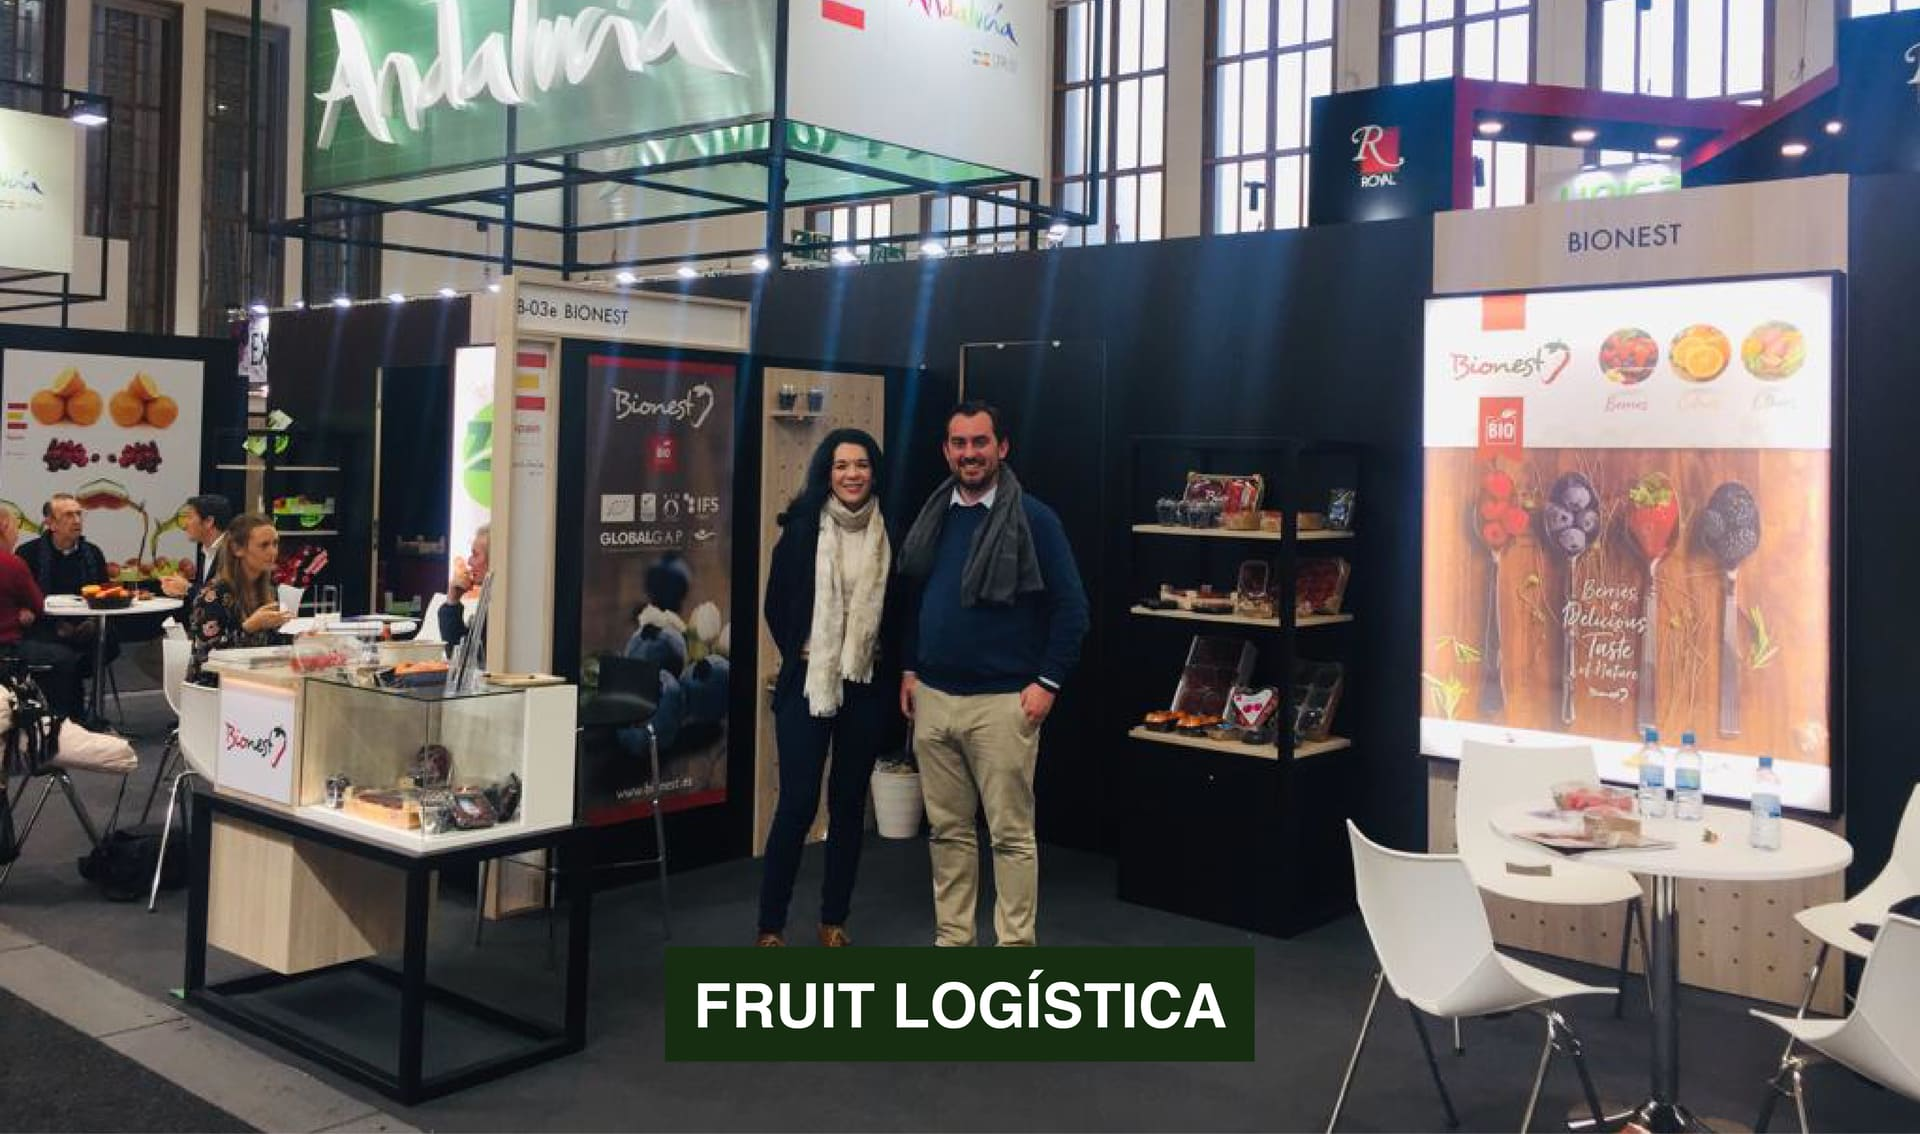 fruit-logistica-bionest